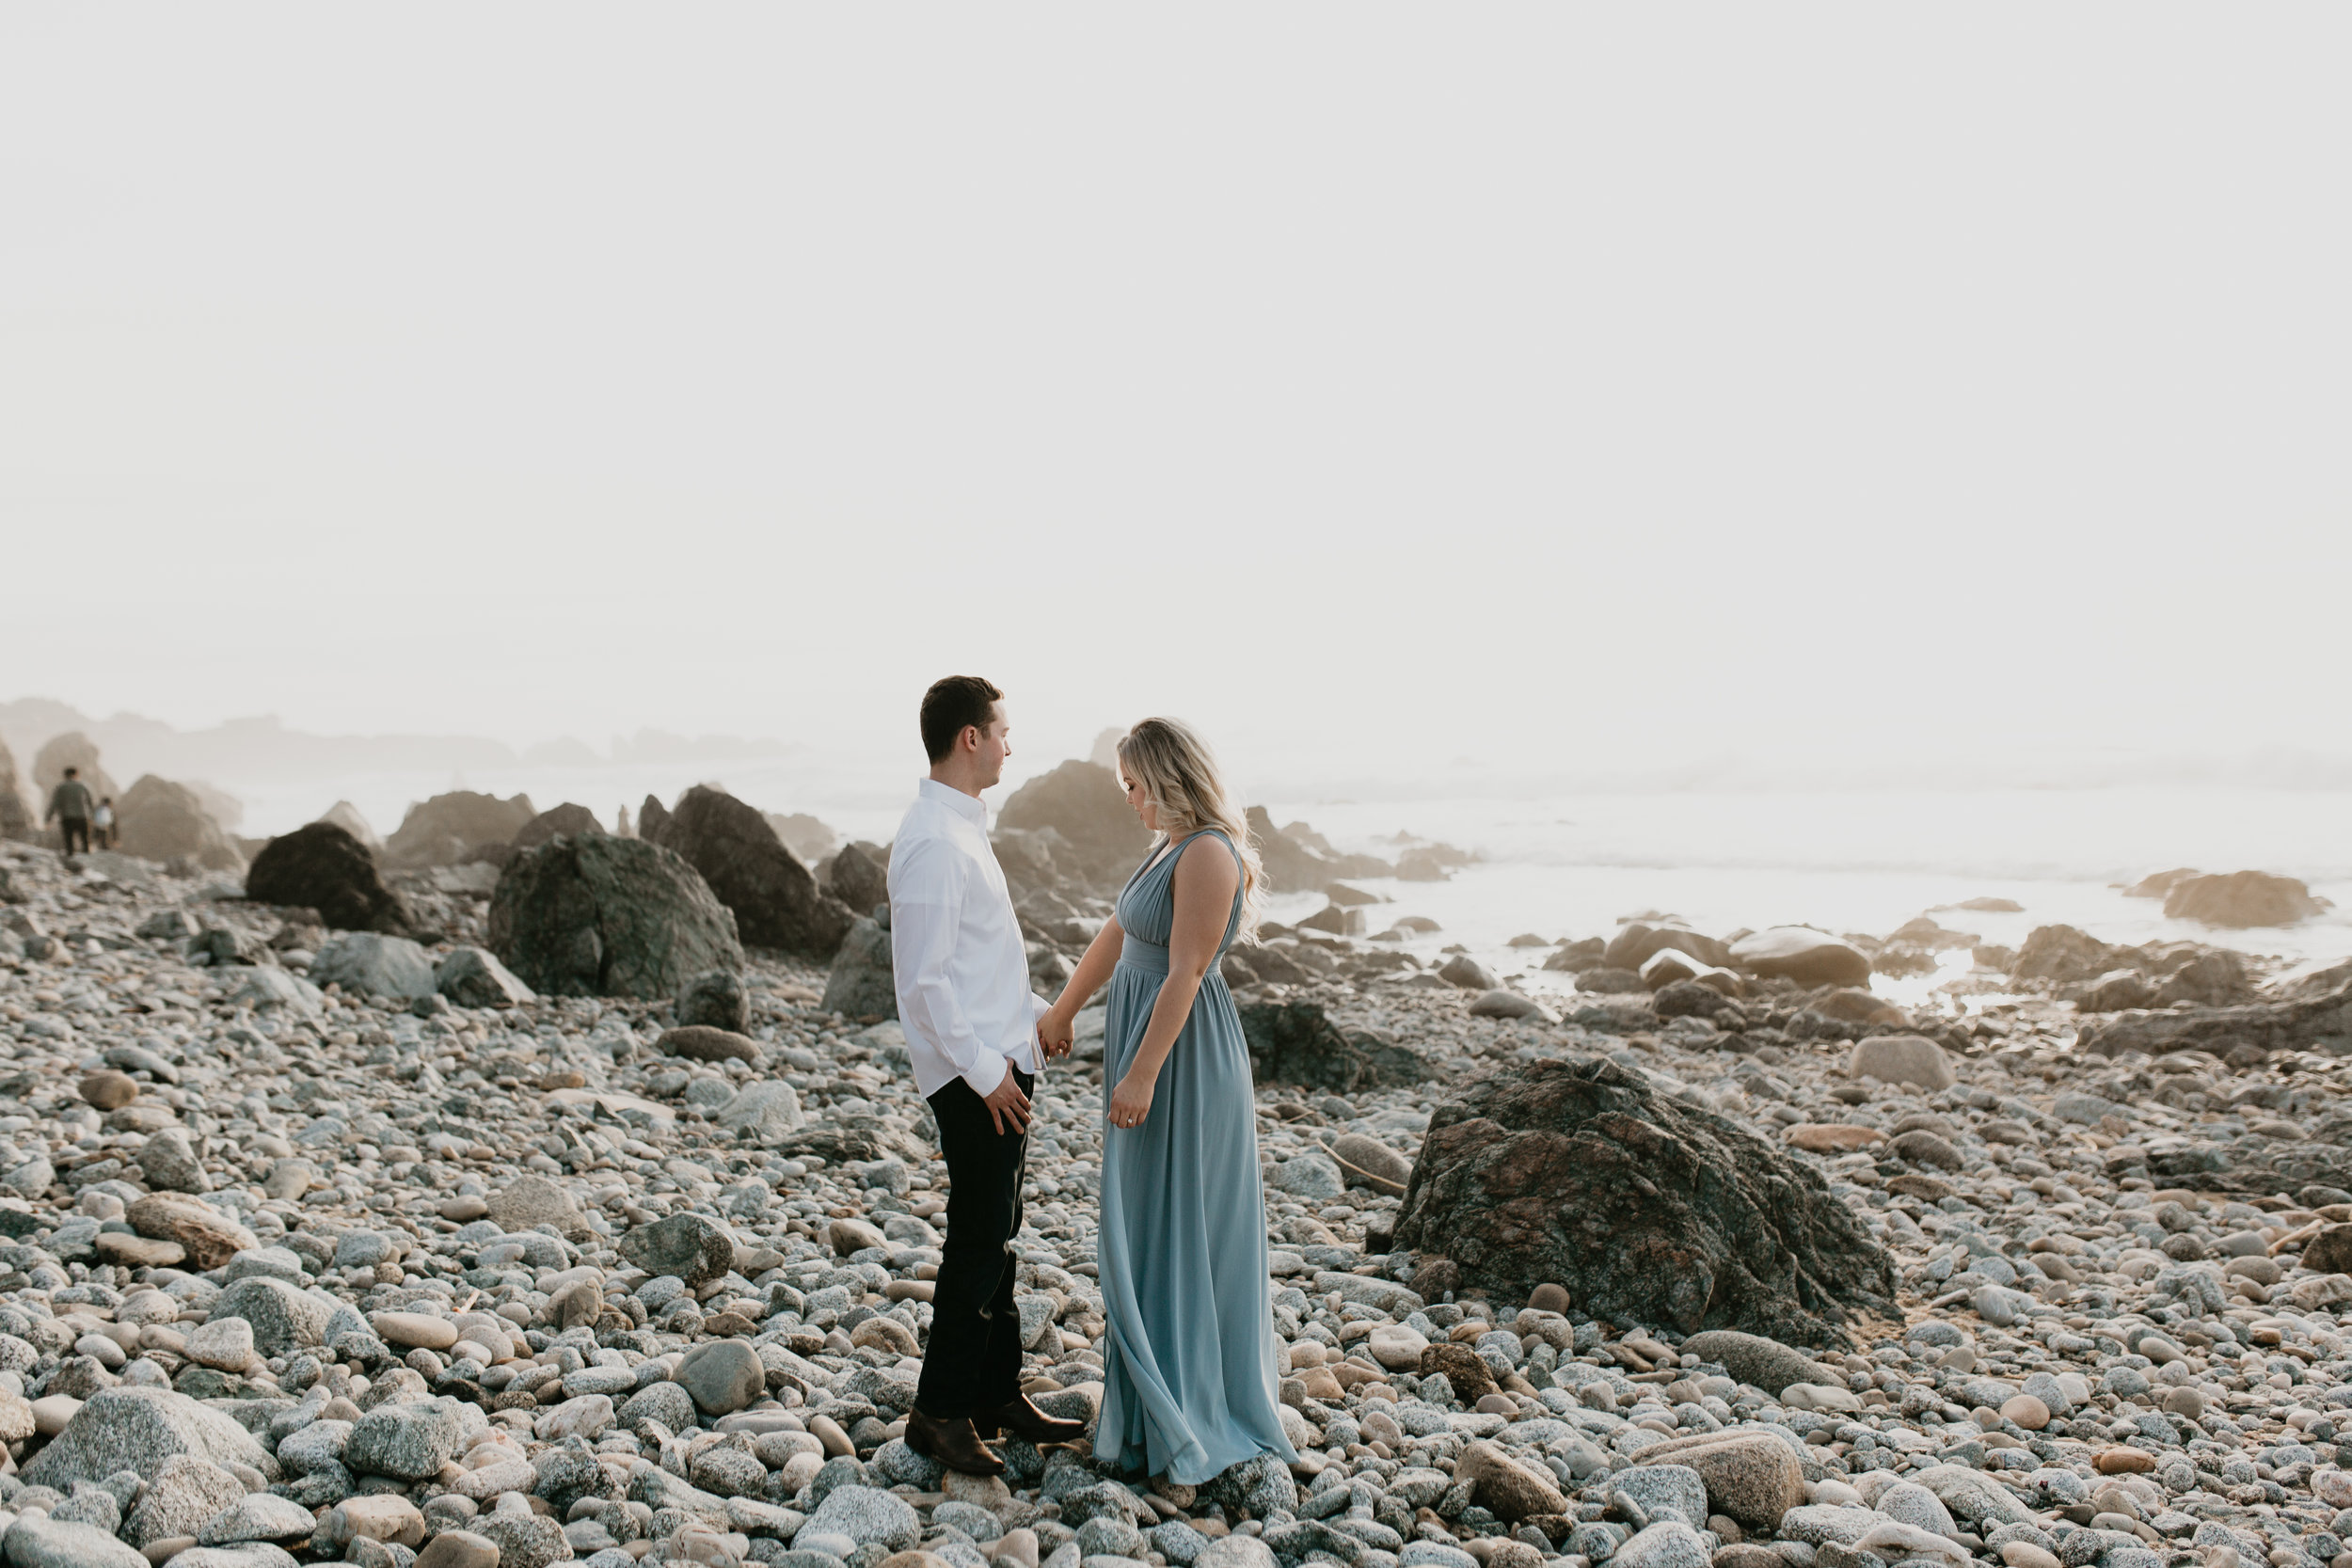 Nicole-Daacke-Photography-big-sur-garrapatta-state-park-adventurous-engagement-session-bixy-bridge-elopement-big-sur-wedding-photographer-monterey-elopement-photographer-california-golden-sunset-coast-photos-37.jpg